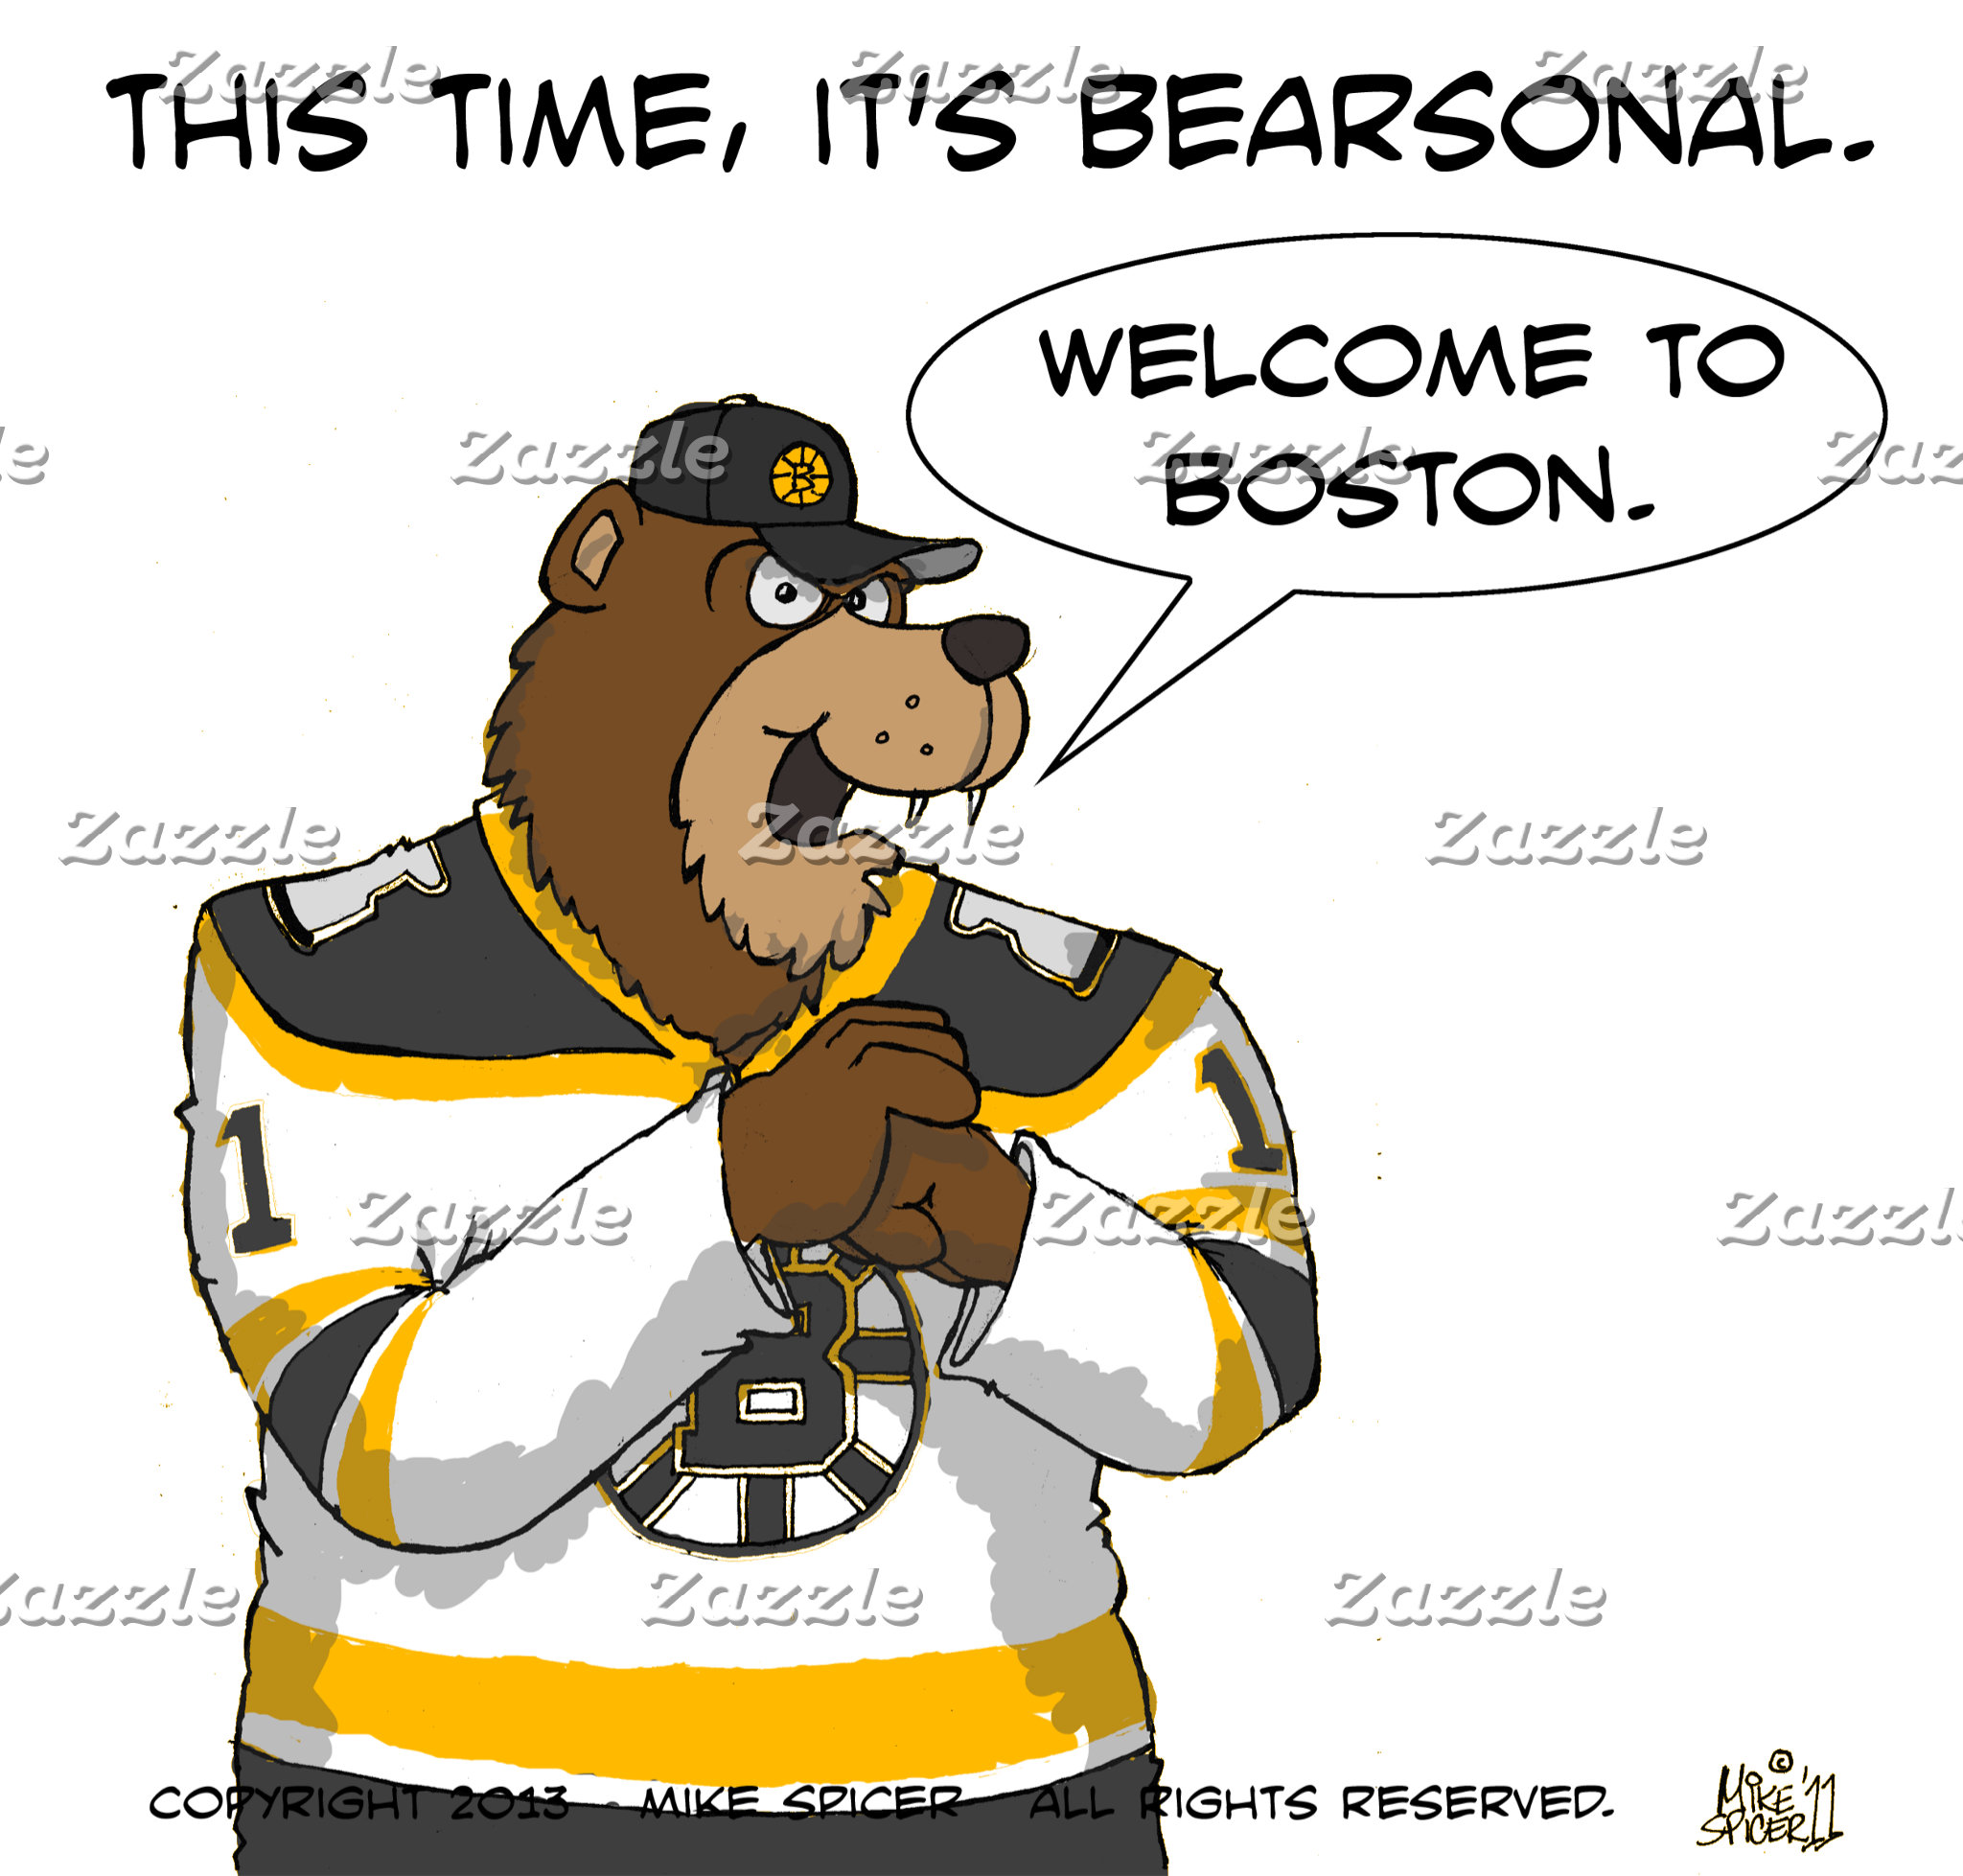 This Time, it's Bearsonal.